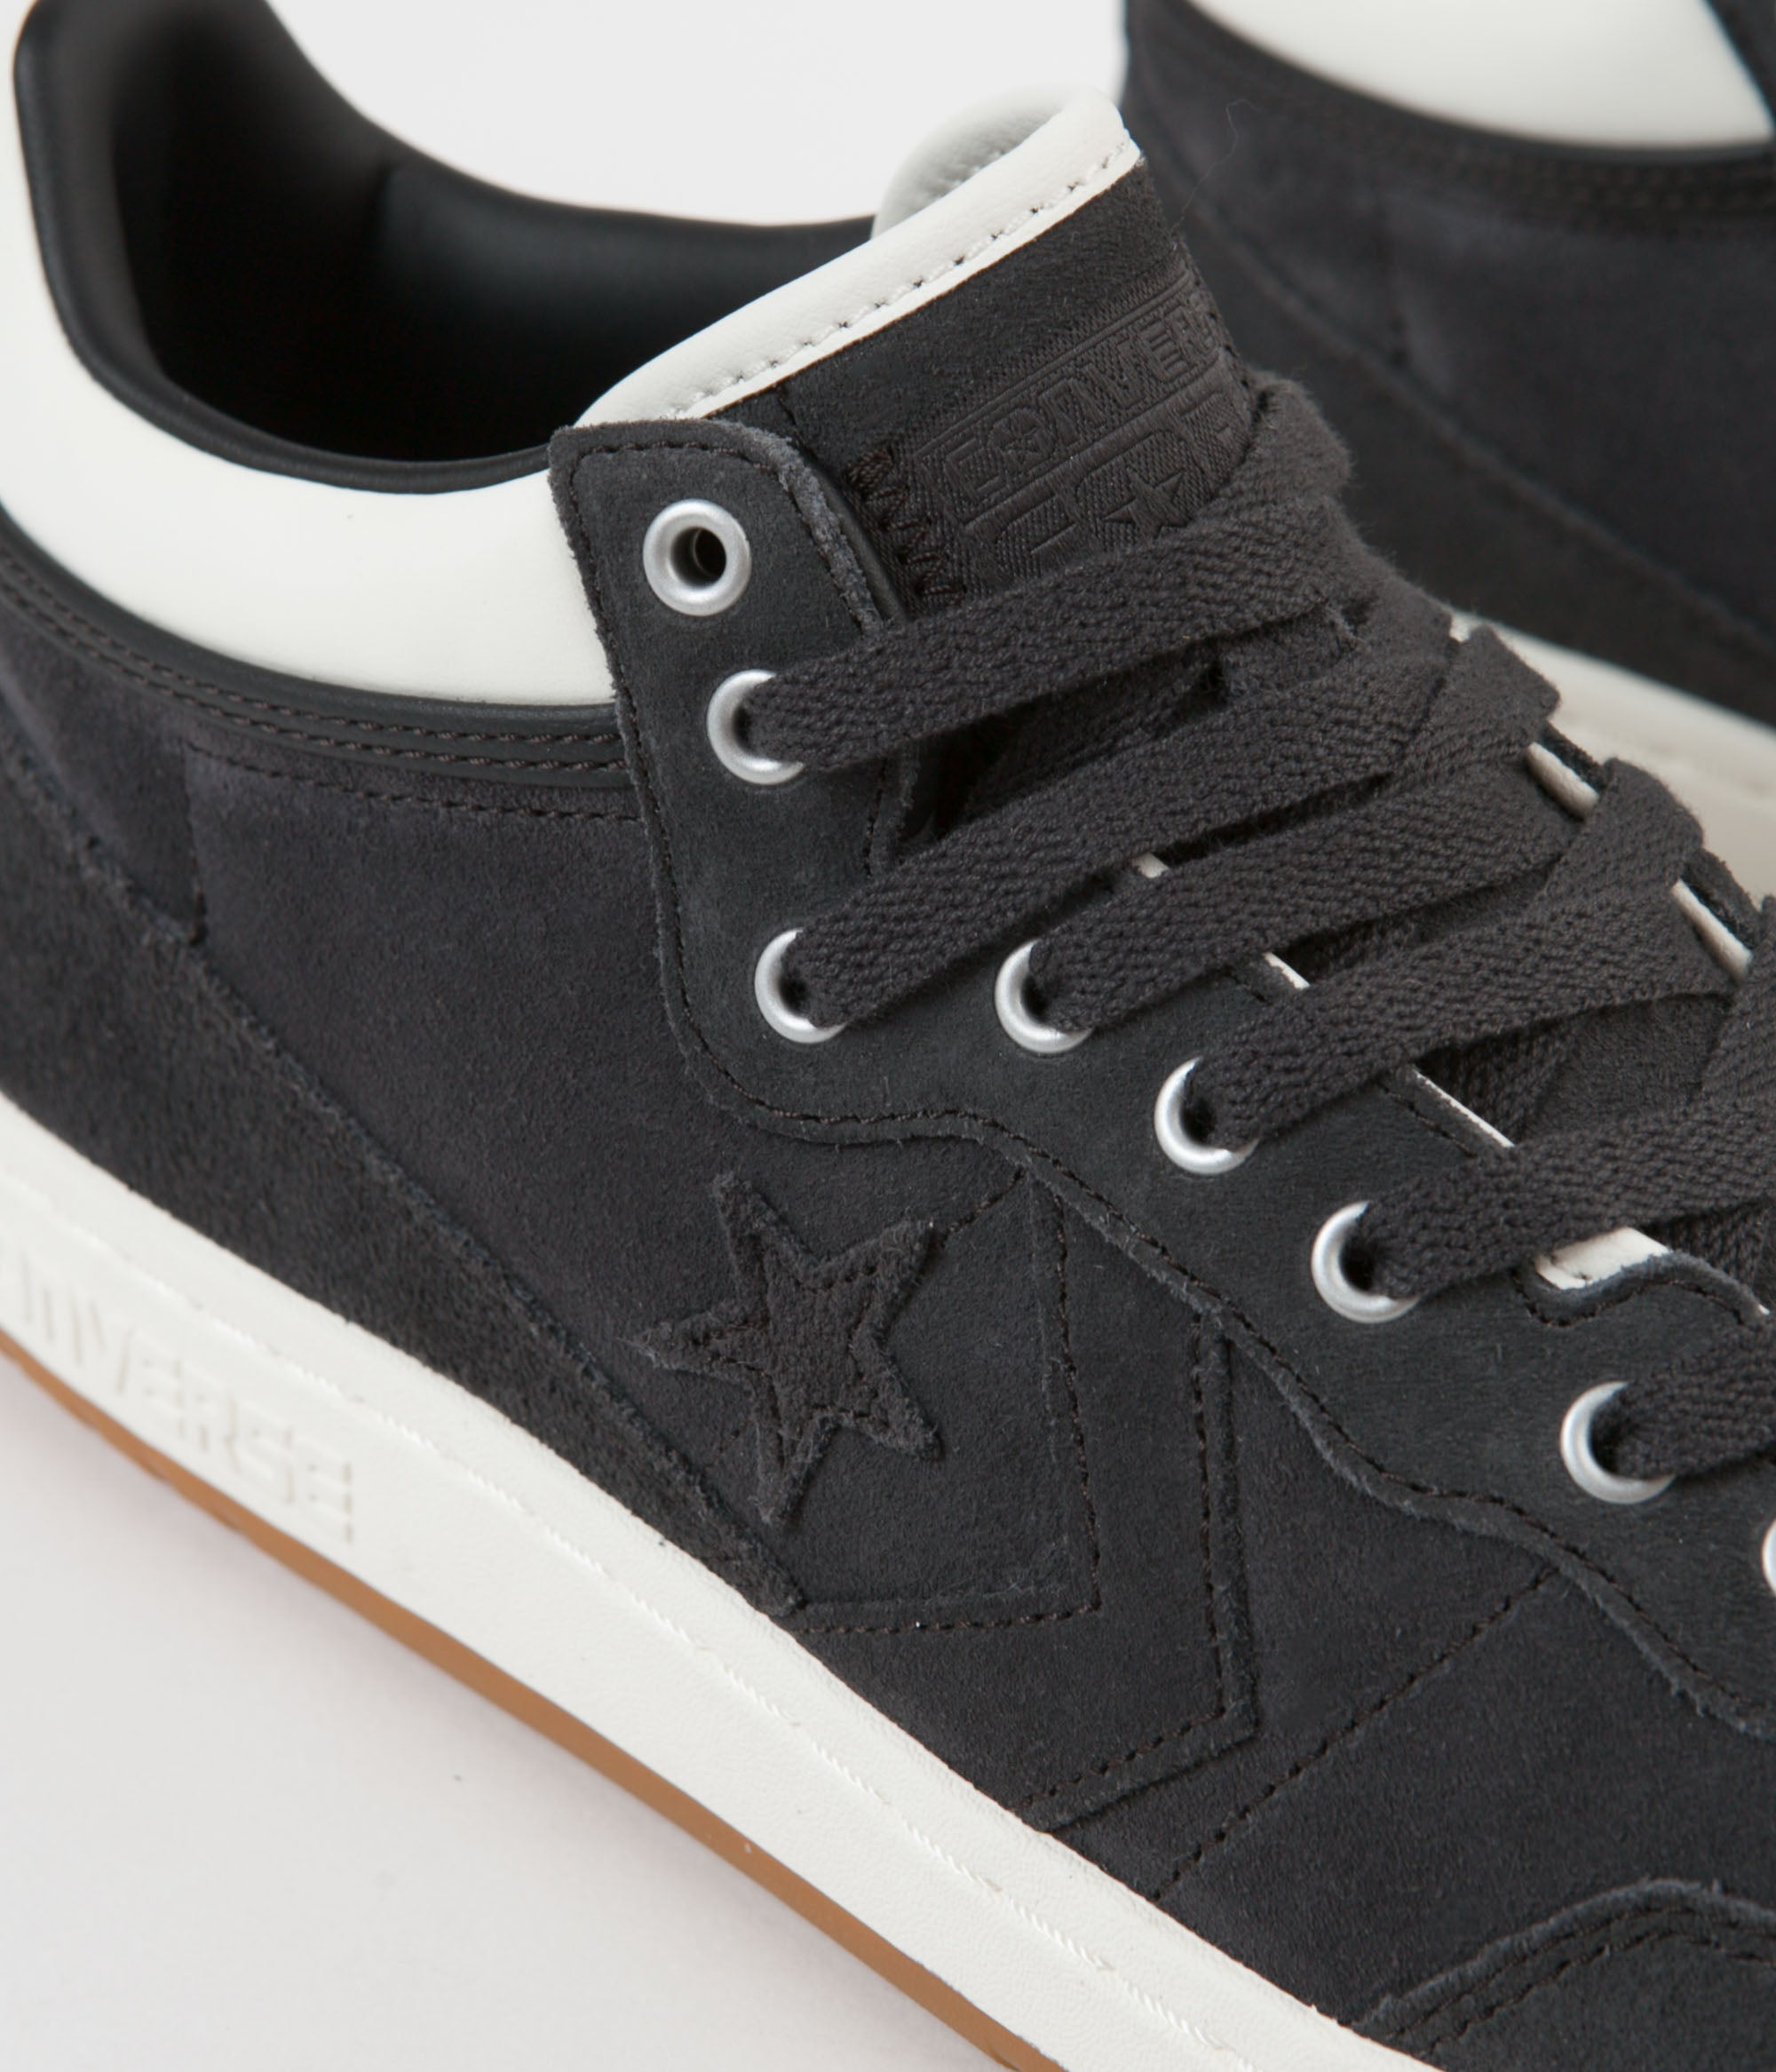 Converse Fastbreak Pro Mid Shoes - Almost Black / Egret / Gum